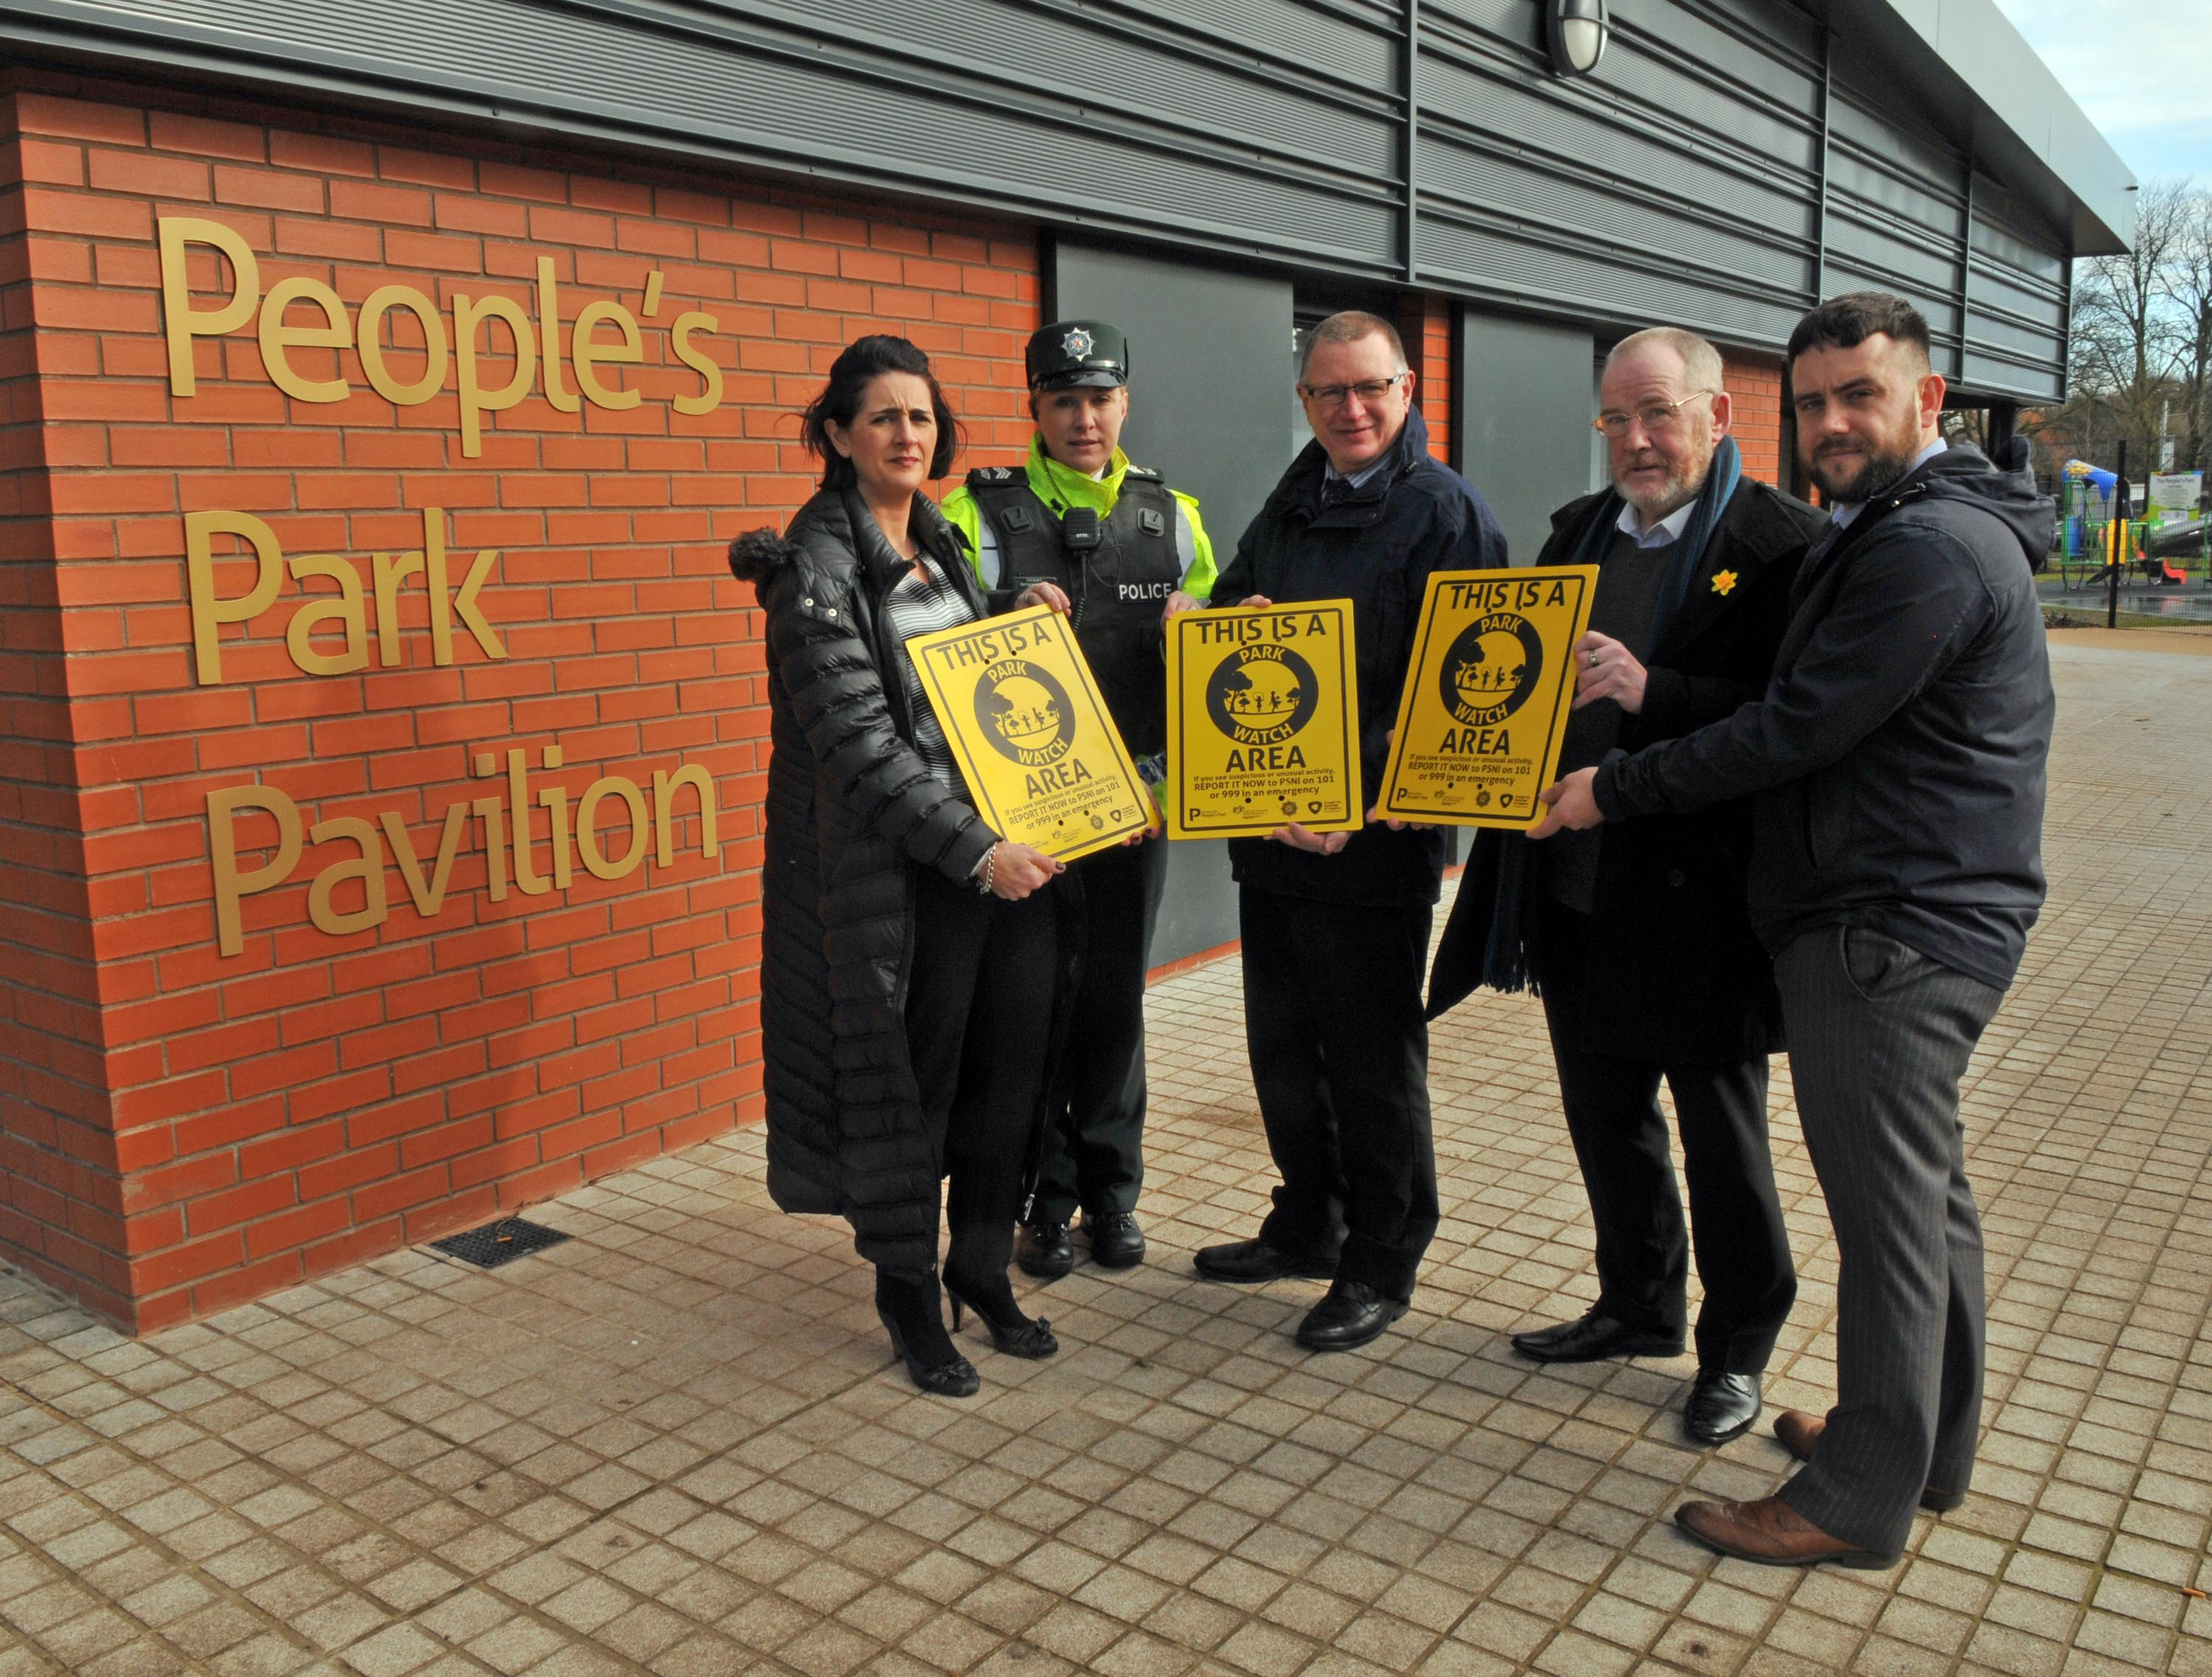 Annette Blaney, Policing and Community Safety Partnership, Sergeant Barbara McNally, PSNI Neighbourhood Team, Alderman Robert Smith, Chair of the Policing and Community Safety Partnership, local resident Vincent McAleenan and Michael Ruddy, Park Development Officer at the launch of 'Park Watch' in Portadown Peoples Park